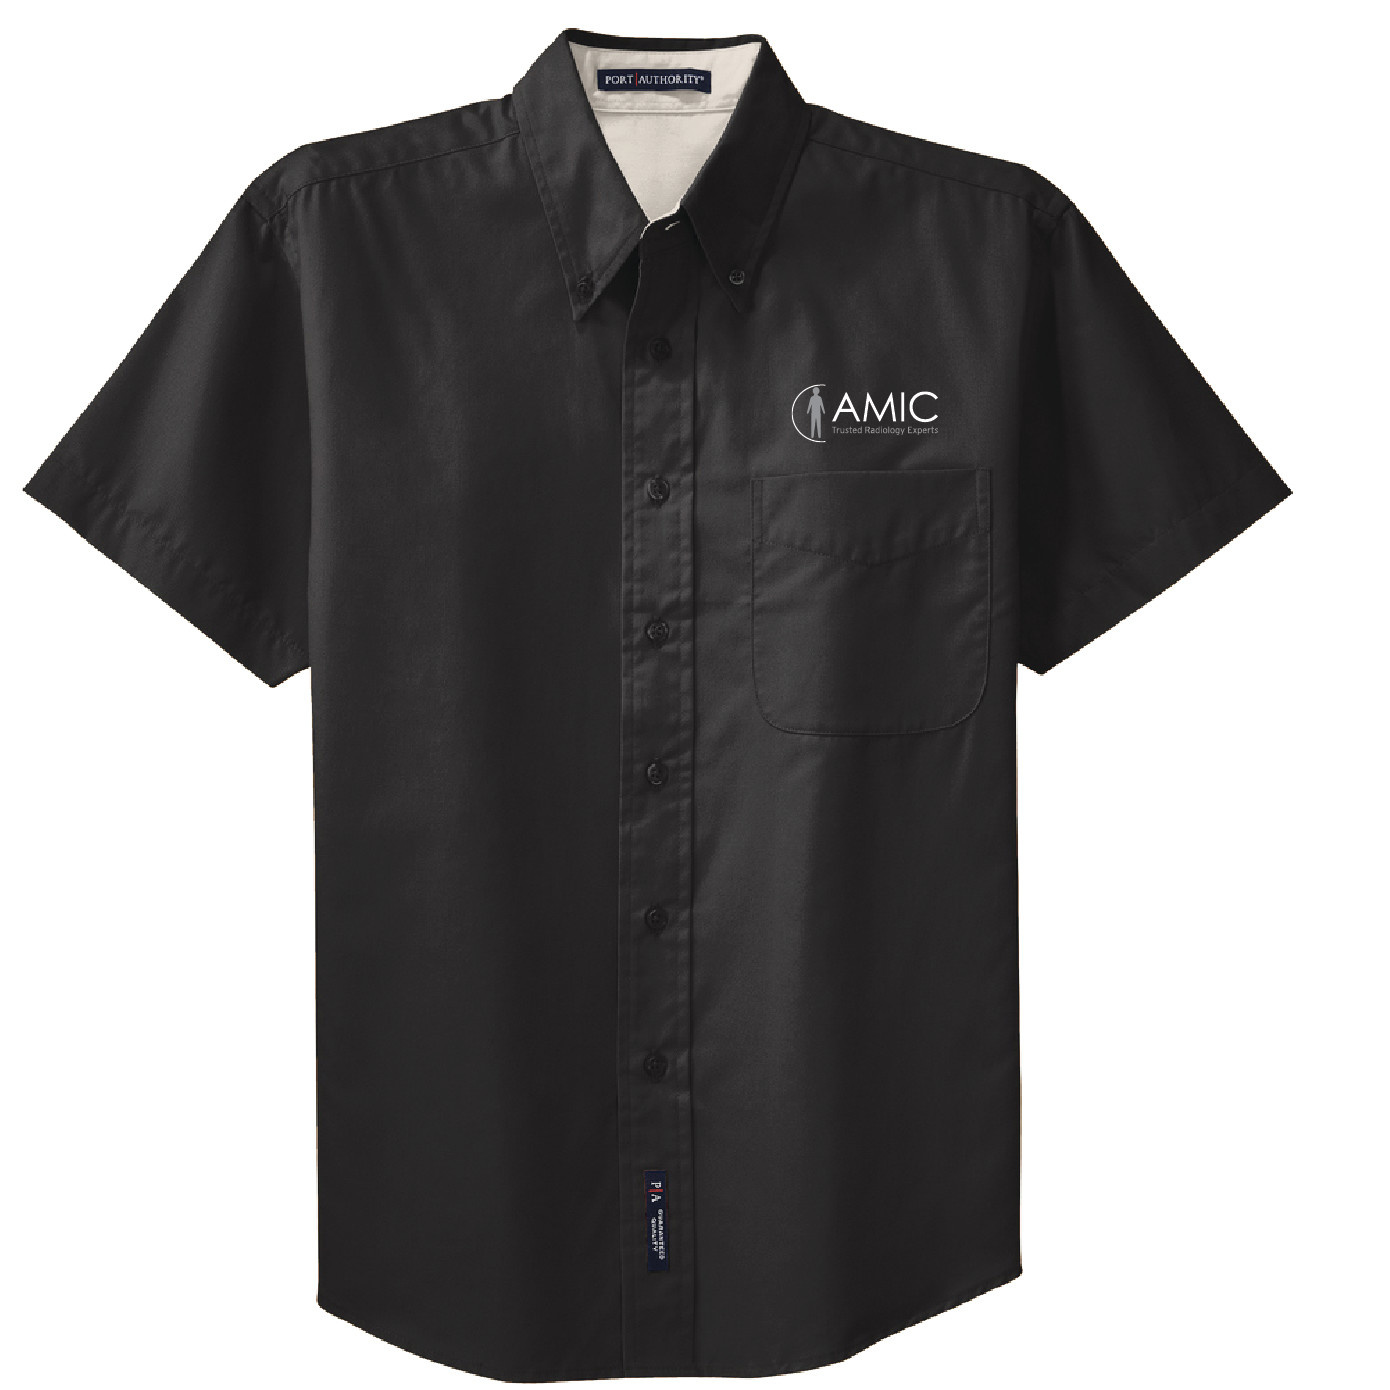 Port Authority Port Authority Short Sleeve Easy Care Shirt (Black/Light Stone)